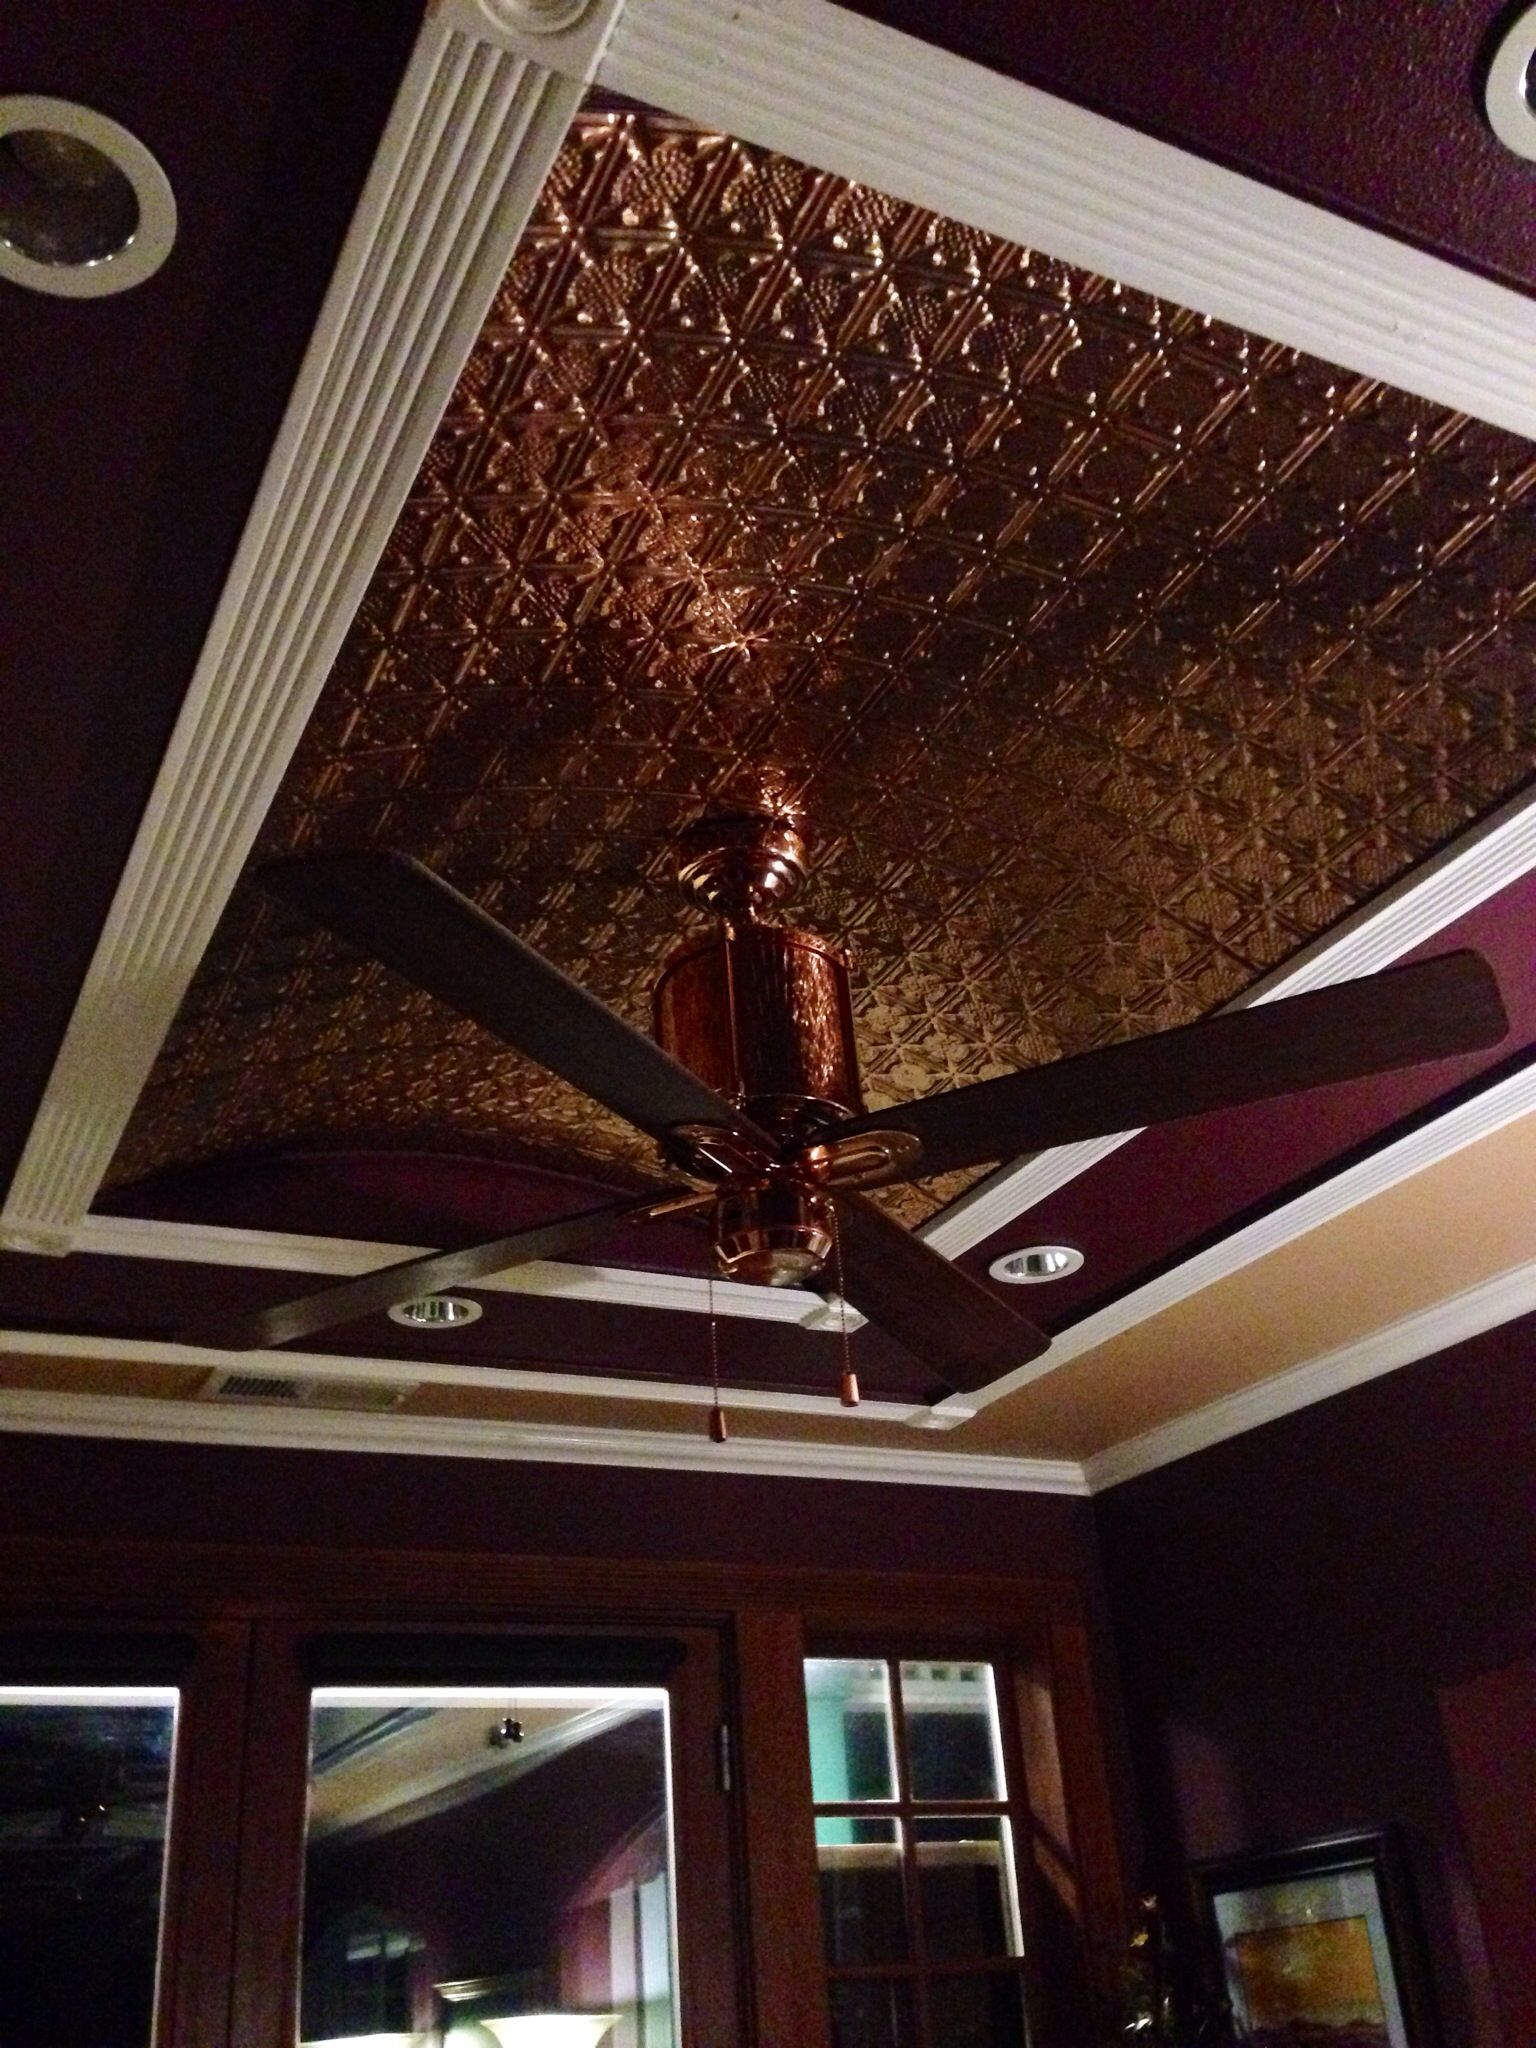 Antique Copper Ceiling Fan Copper Tiled Ceiling With A Copper Fan Something Like